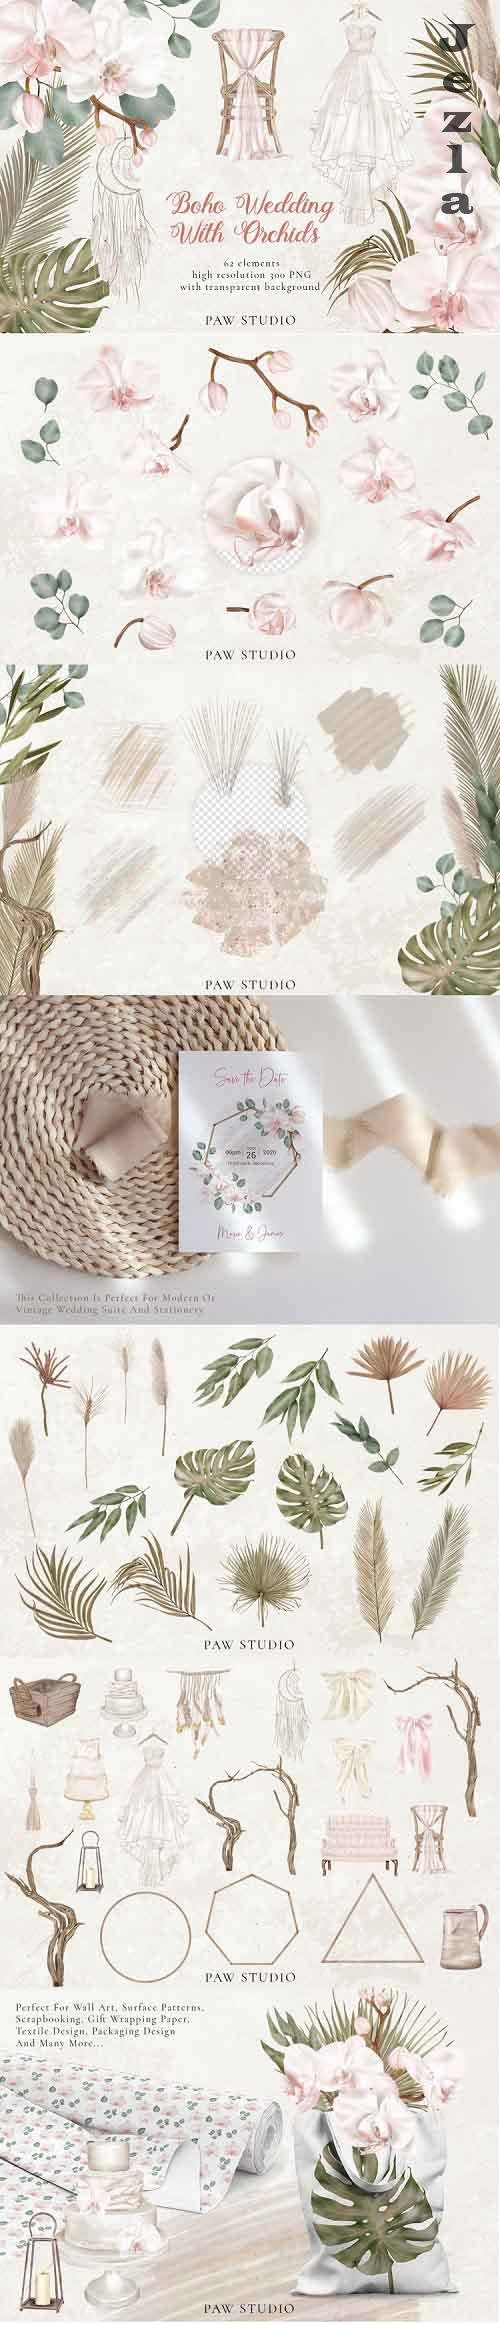 Orchids Boho Wedding Decor Flowers Dry Leaves Clipart  - 719213